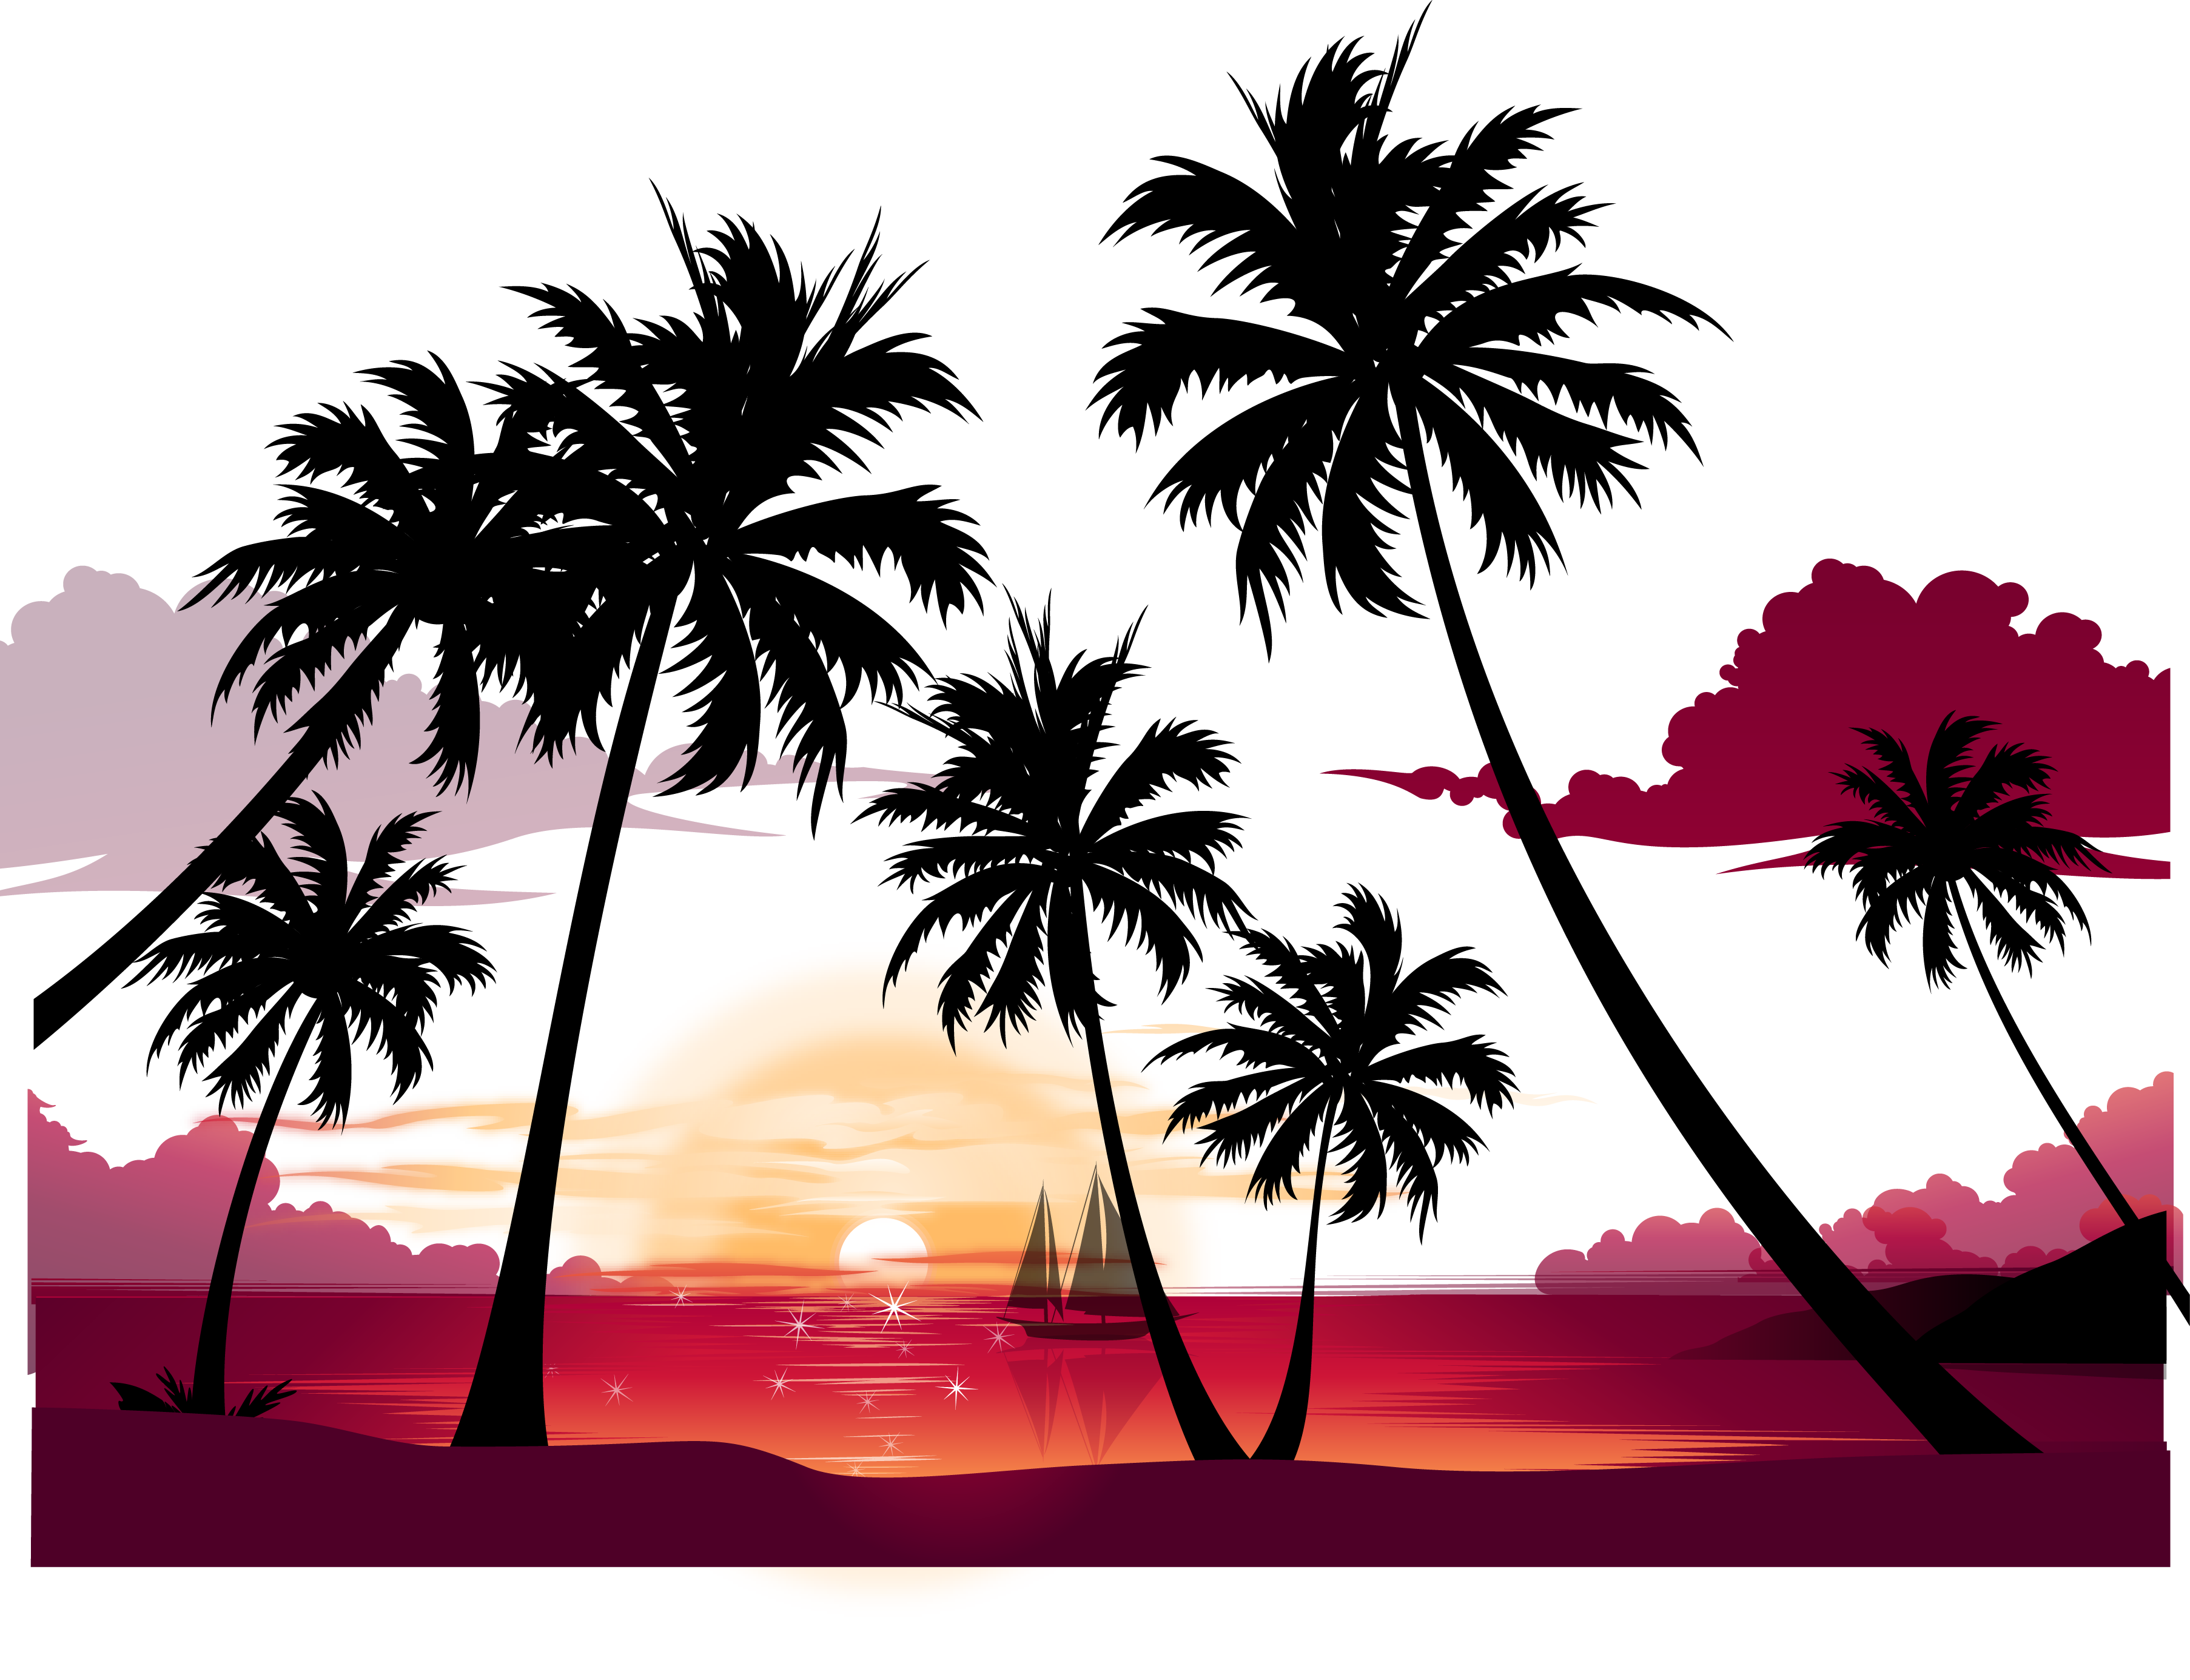 Beach at getdrawings com. Sunset clipart silhouette